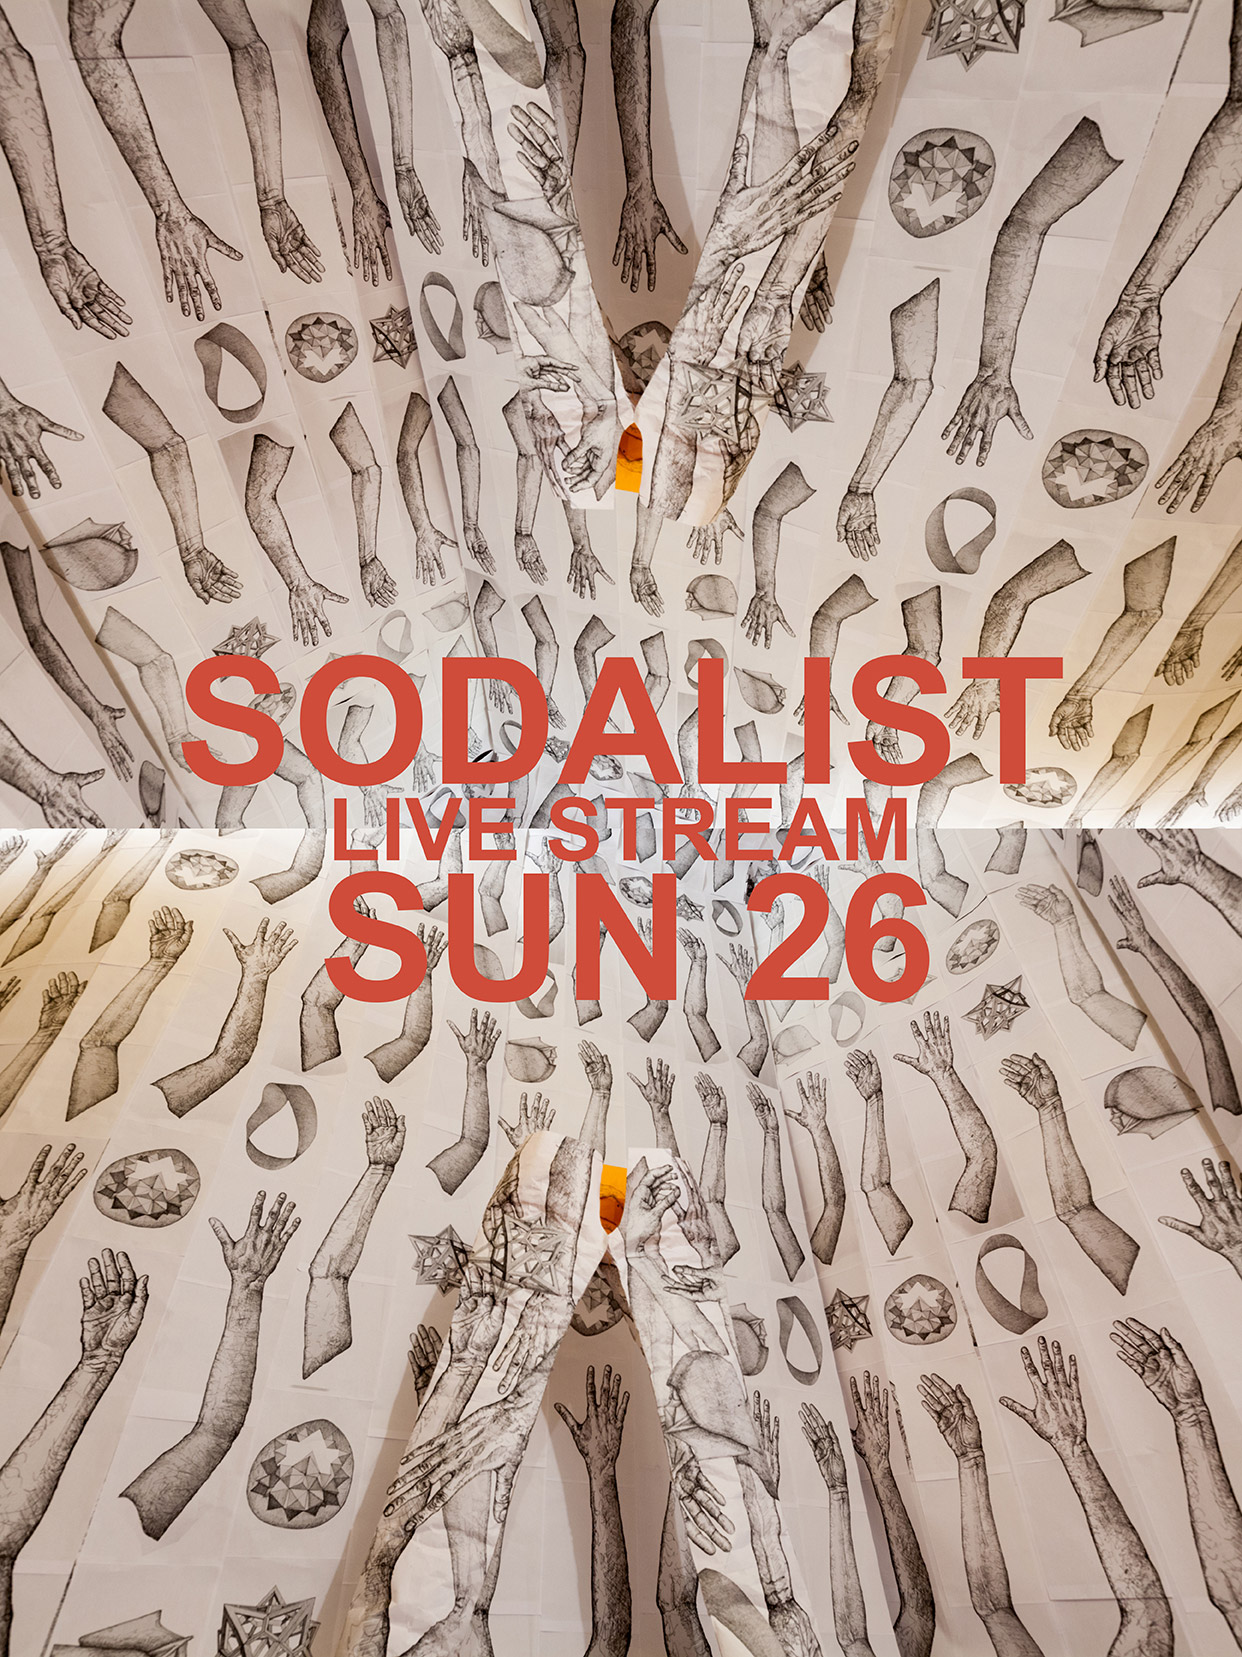 Sodalist!  Ingredients of a Subway Car will Throw Objects Down the Rabbit Hole.  THIS Weekend - SUNDAY Feb 26  LIVE STREAM starting 5 AM EST